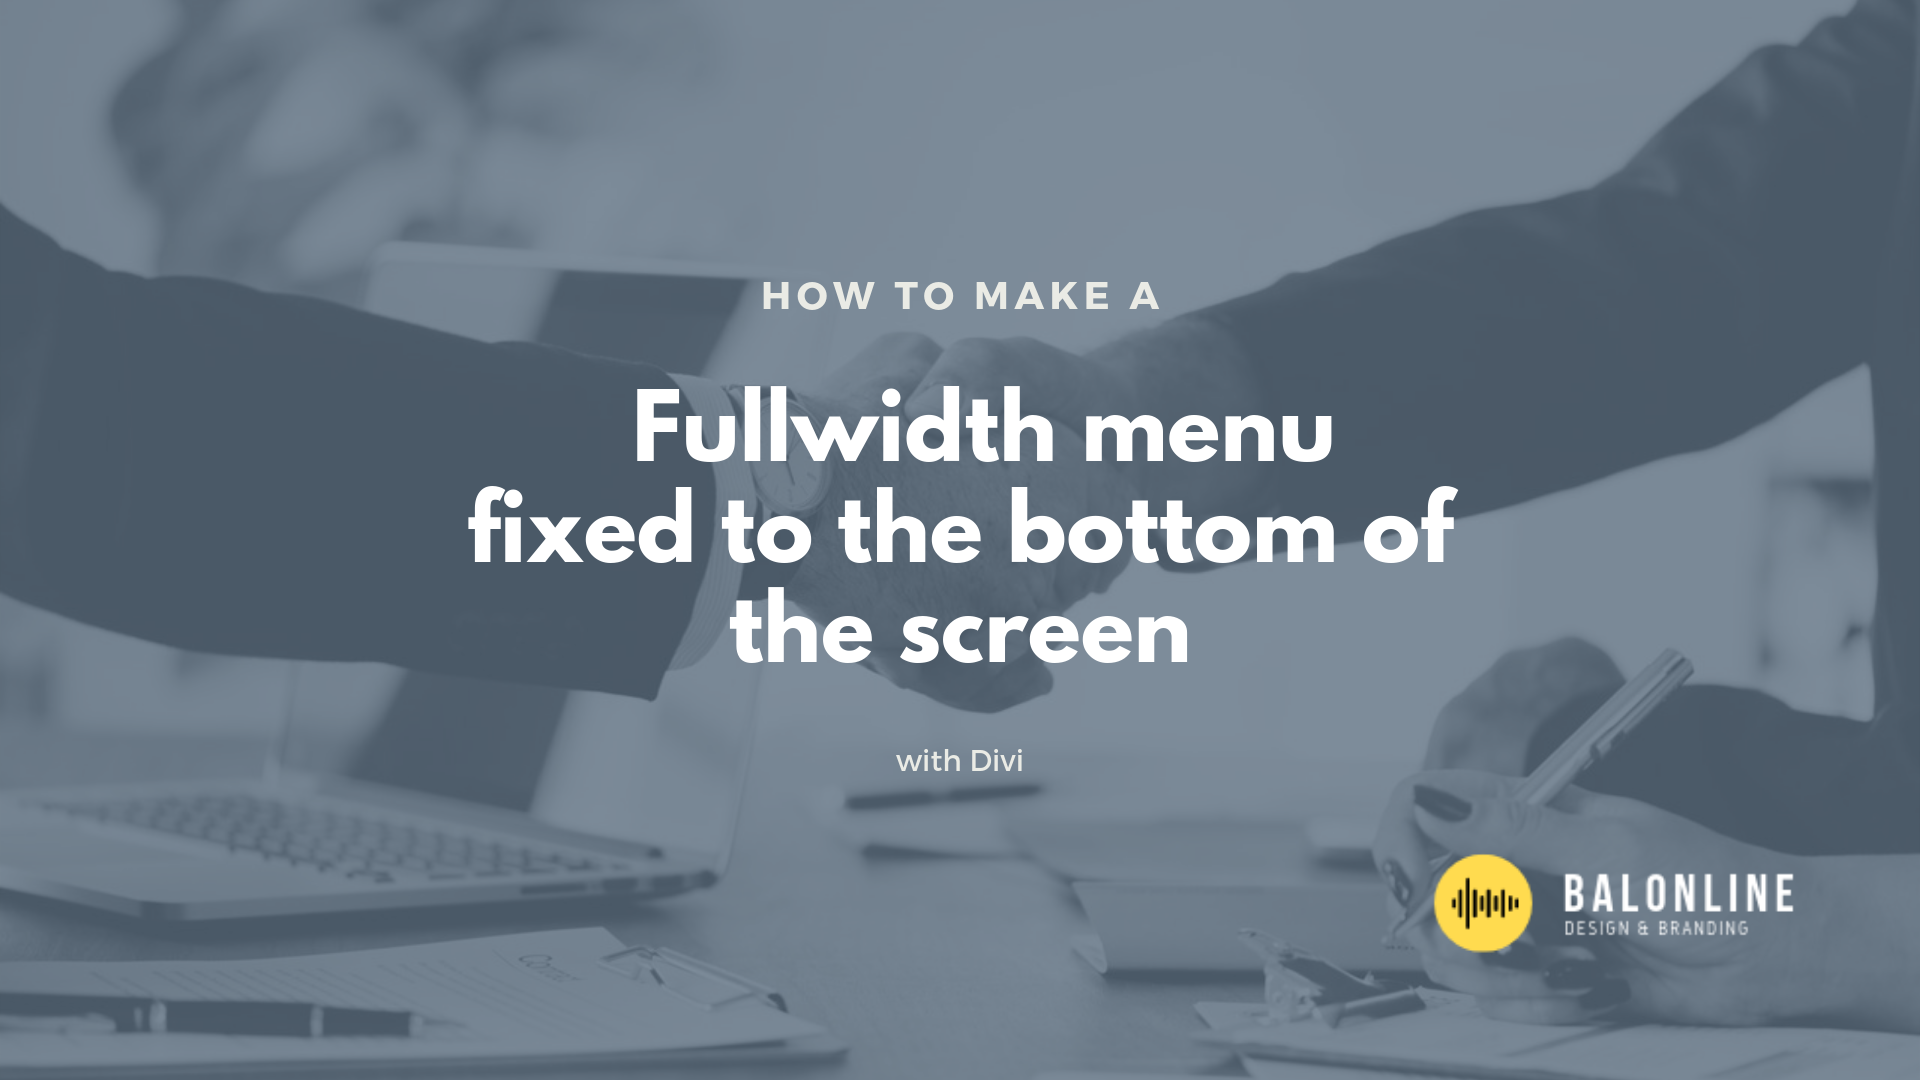 How to make a fullwidth menu fixed to the bottom of the screen with Divi